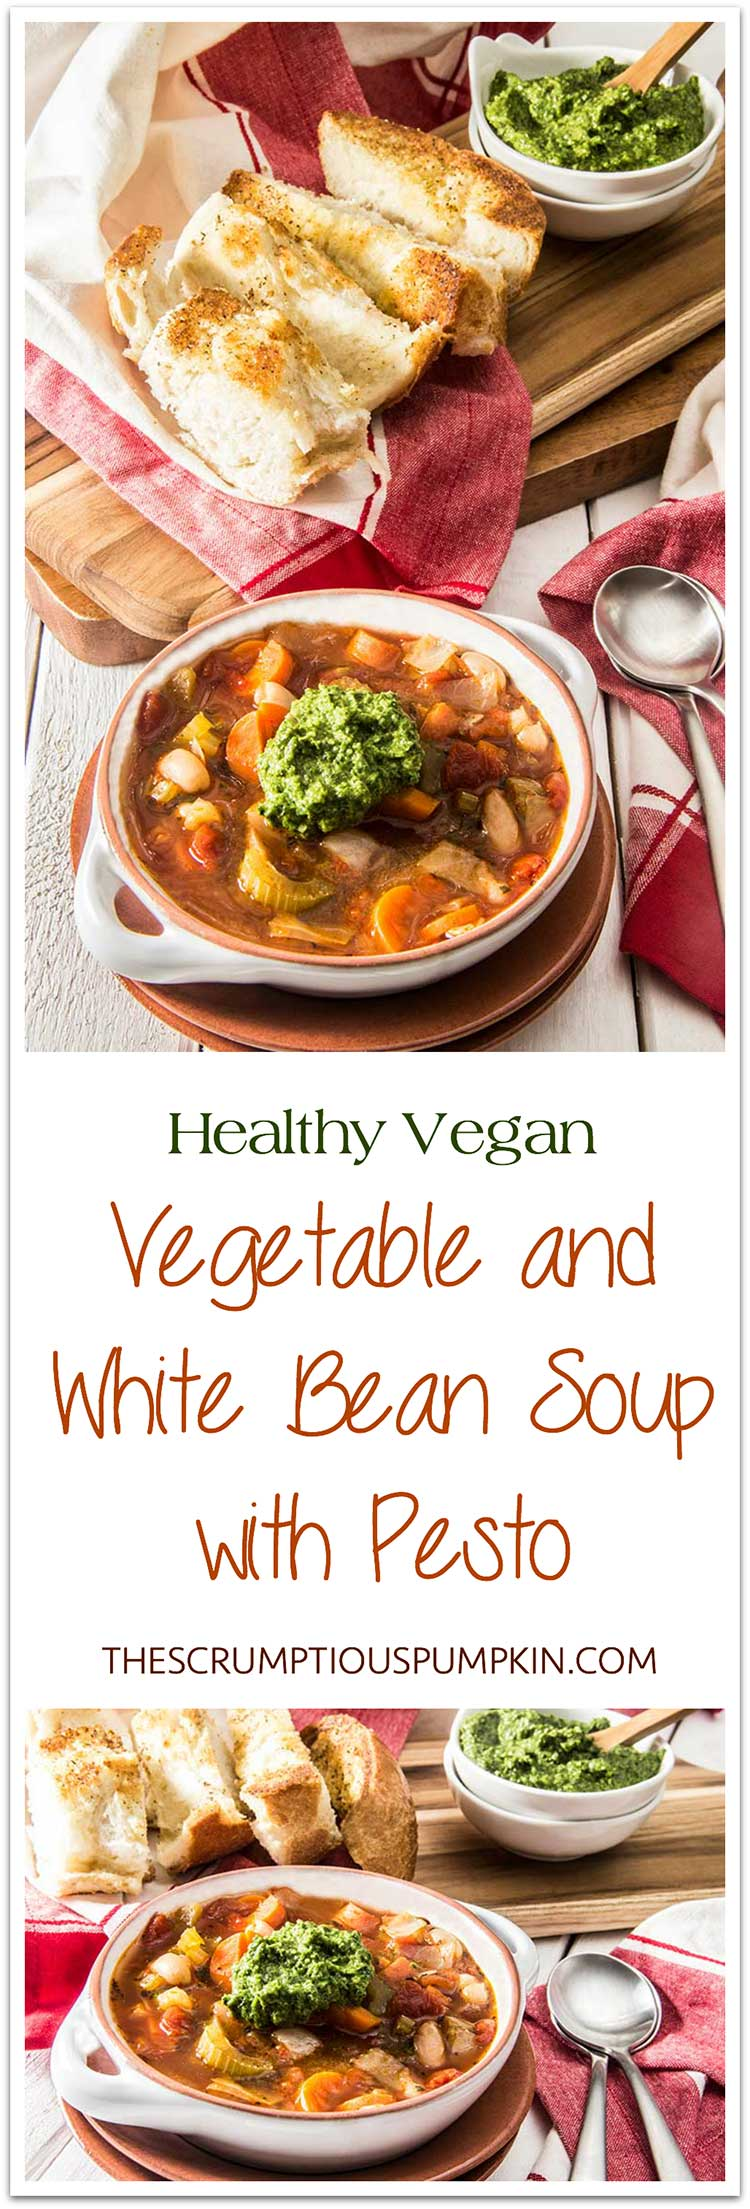 Healthy-Vegan-Vegetable-and-White-Bean-Soup-with-Pesto